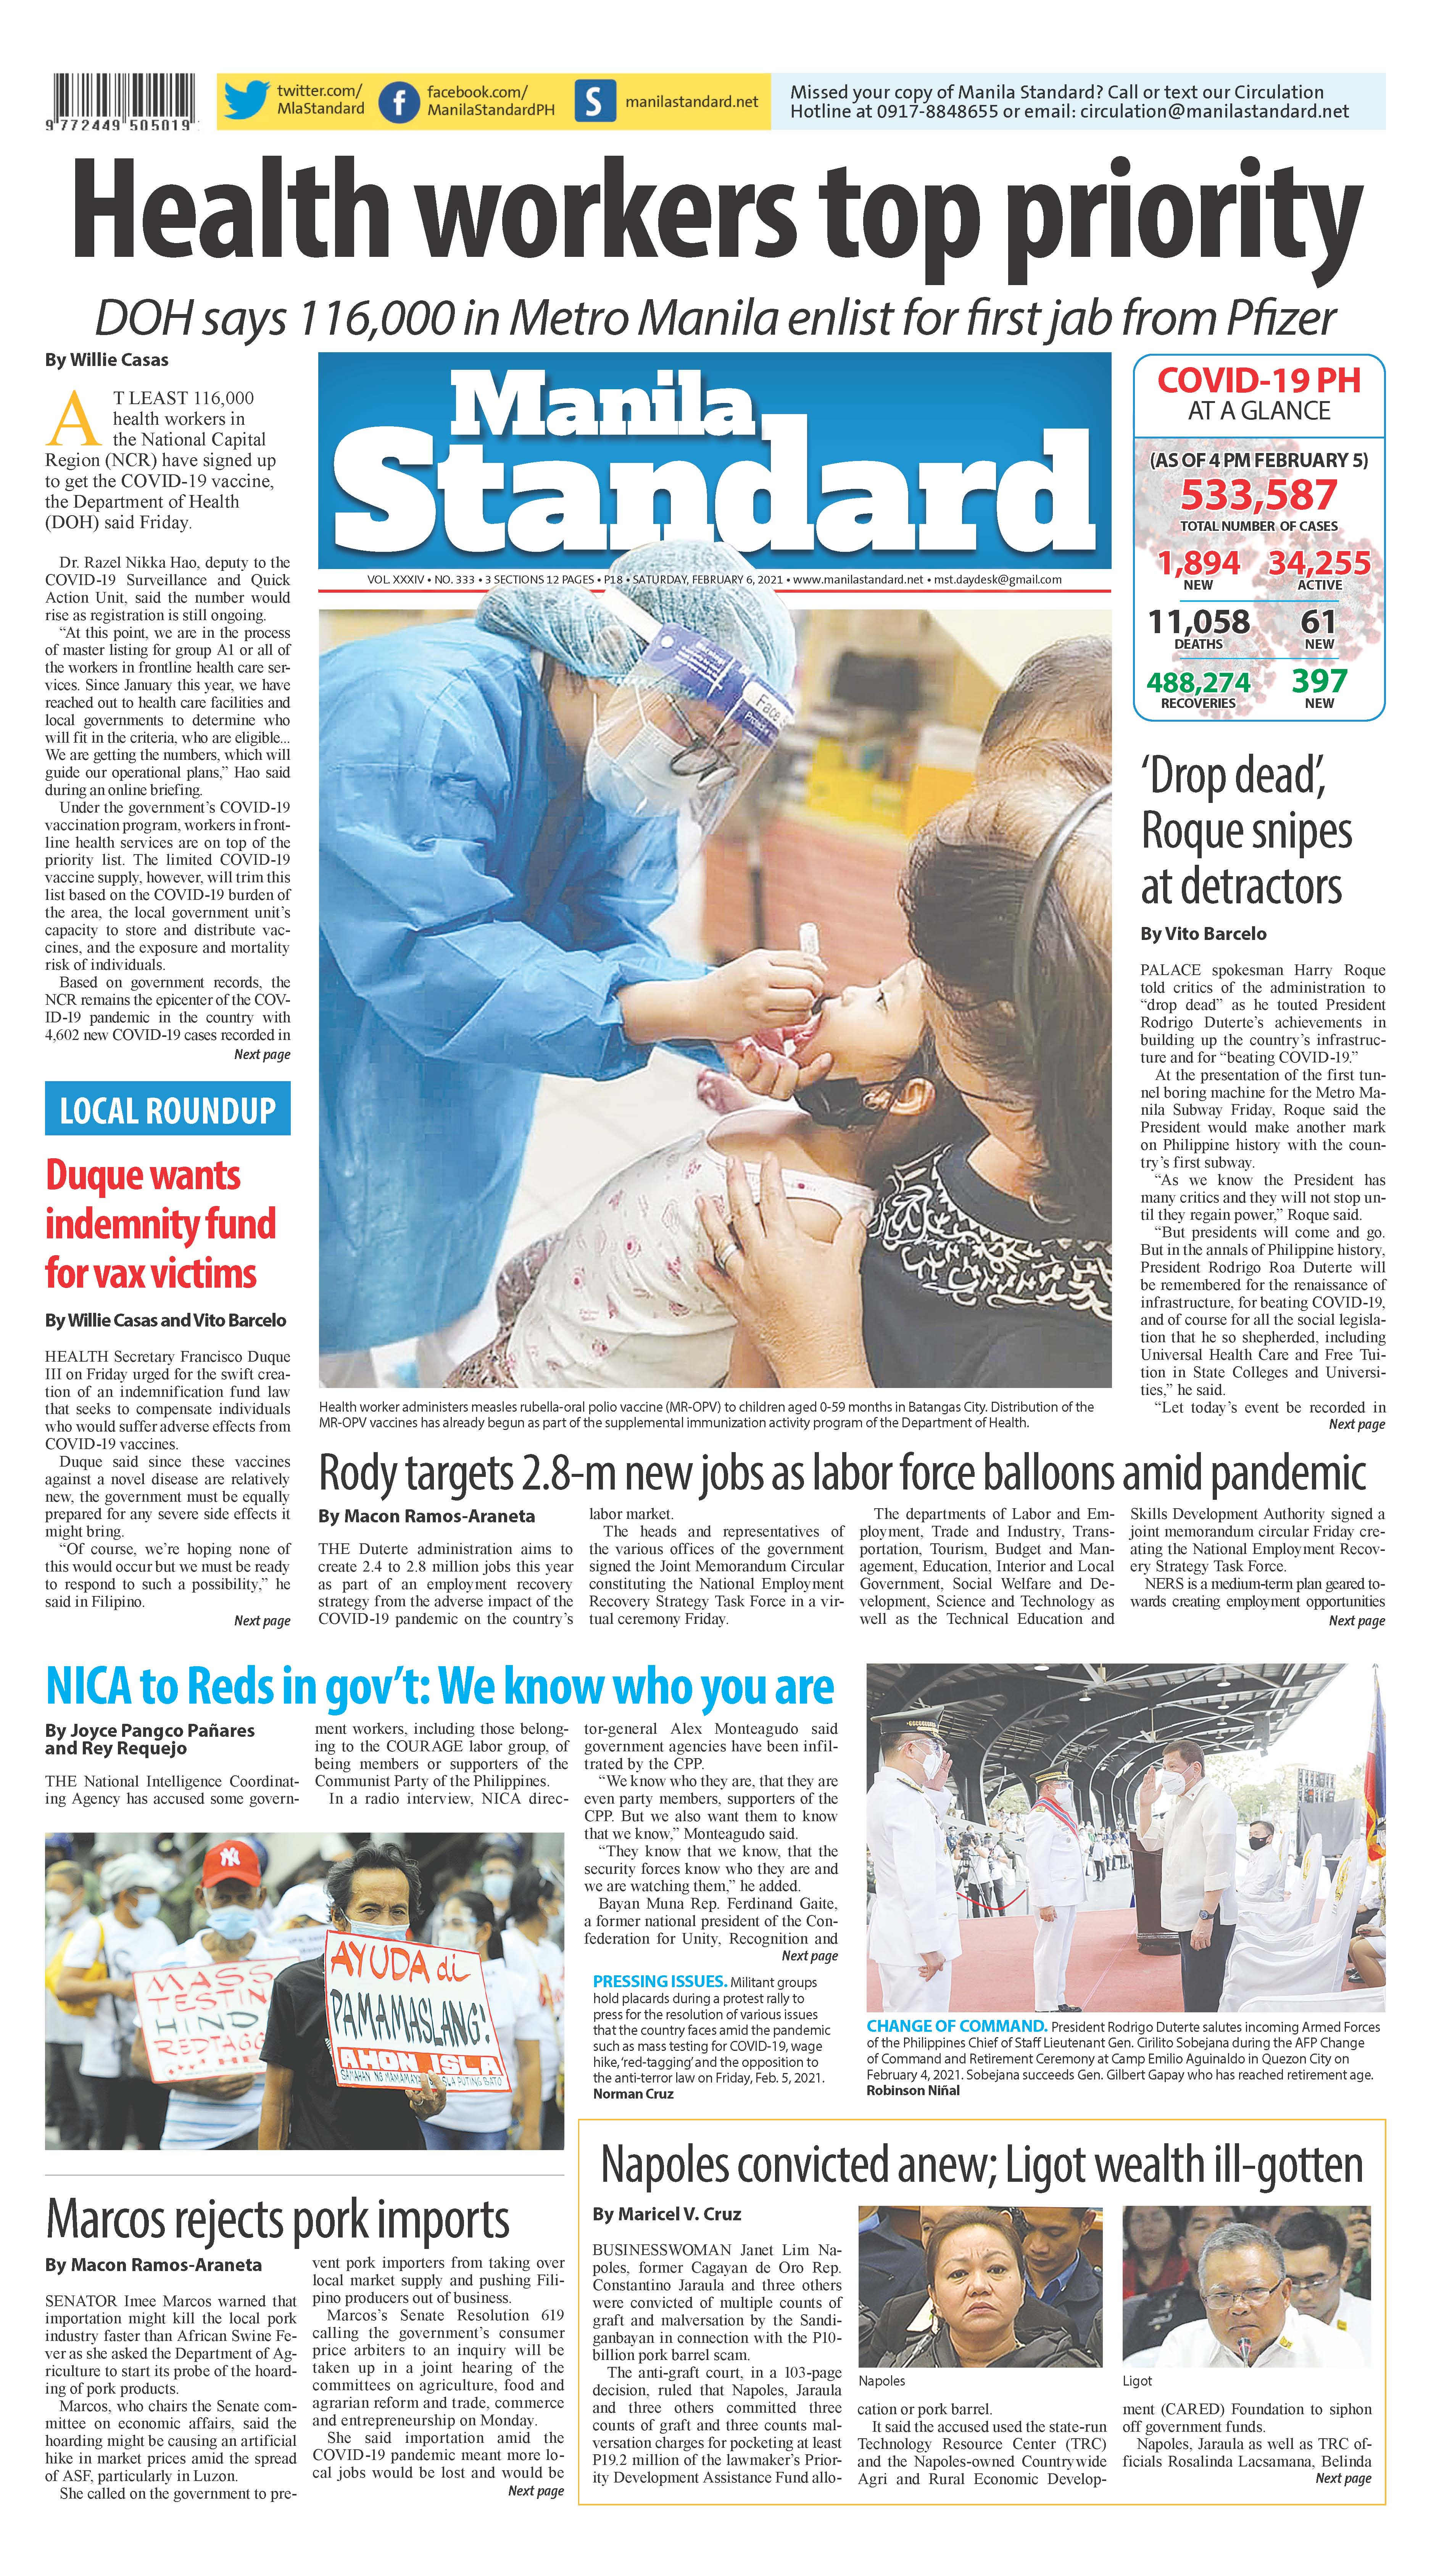 Saturday Print Edition (2/6/2021)